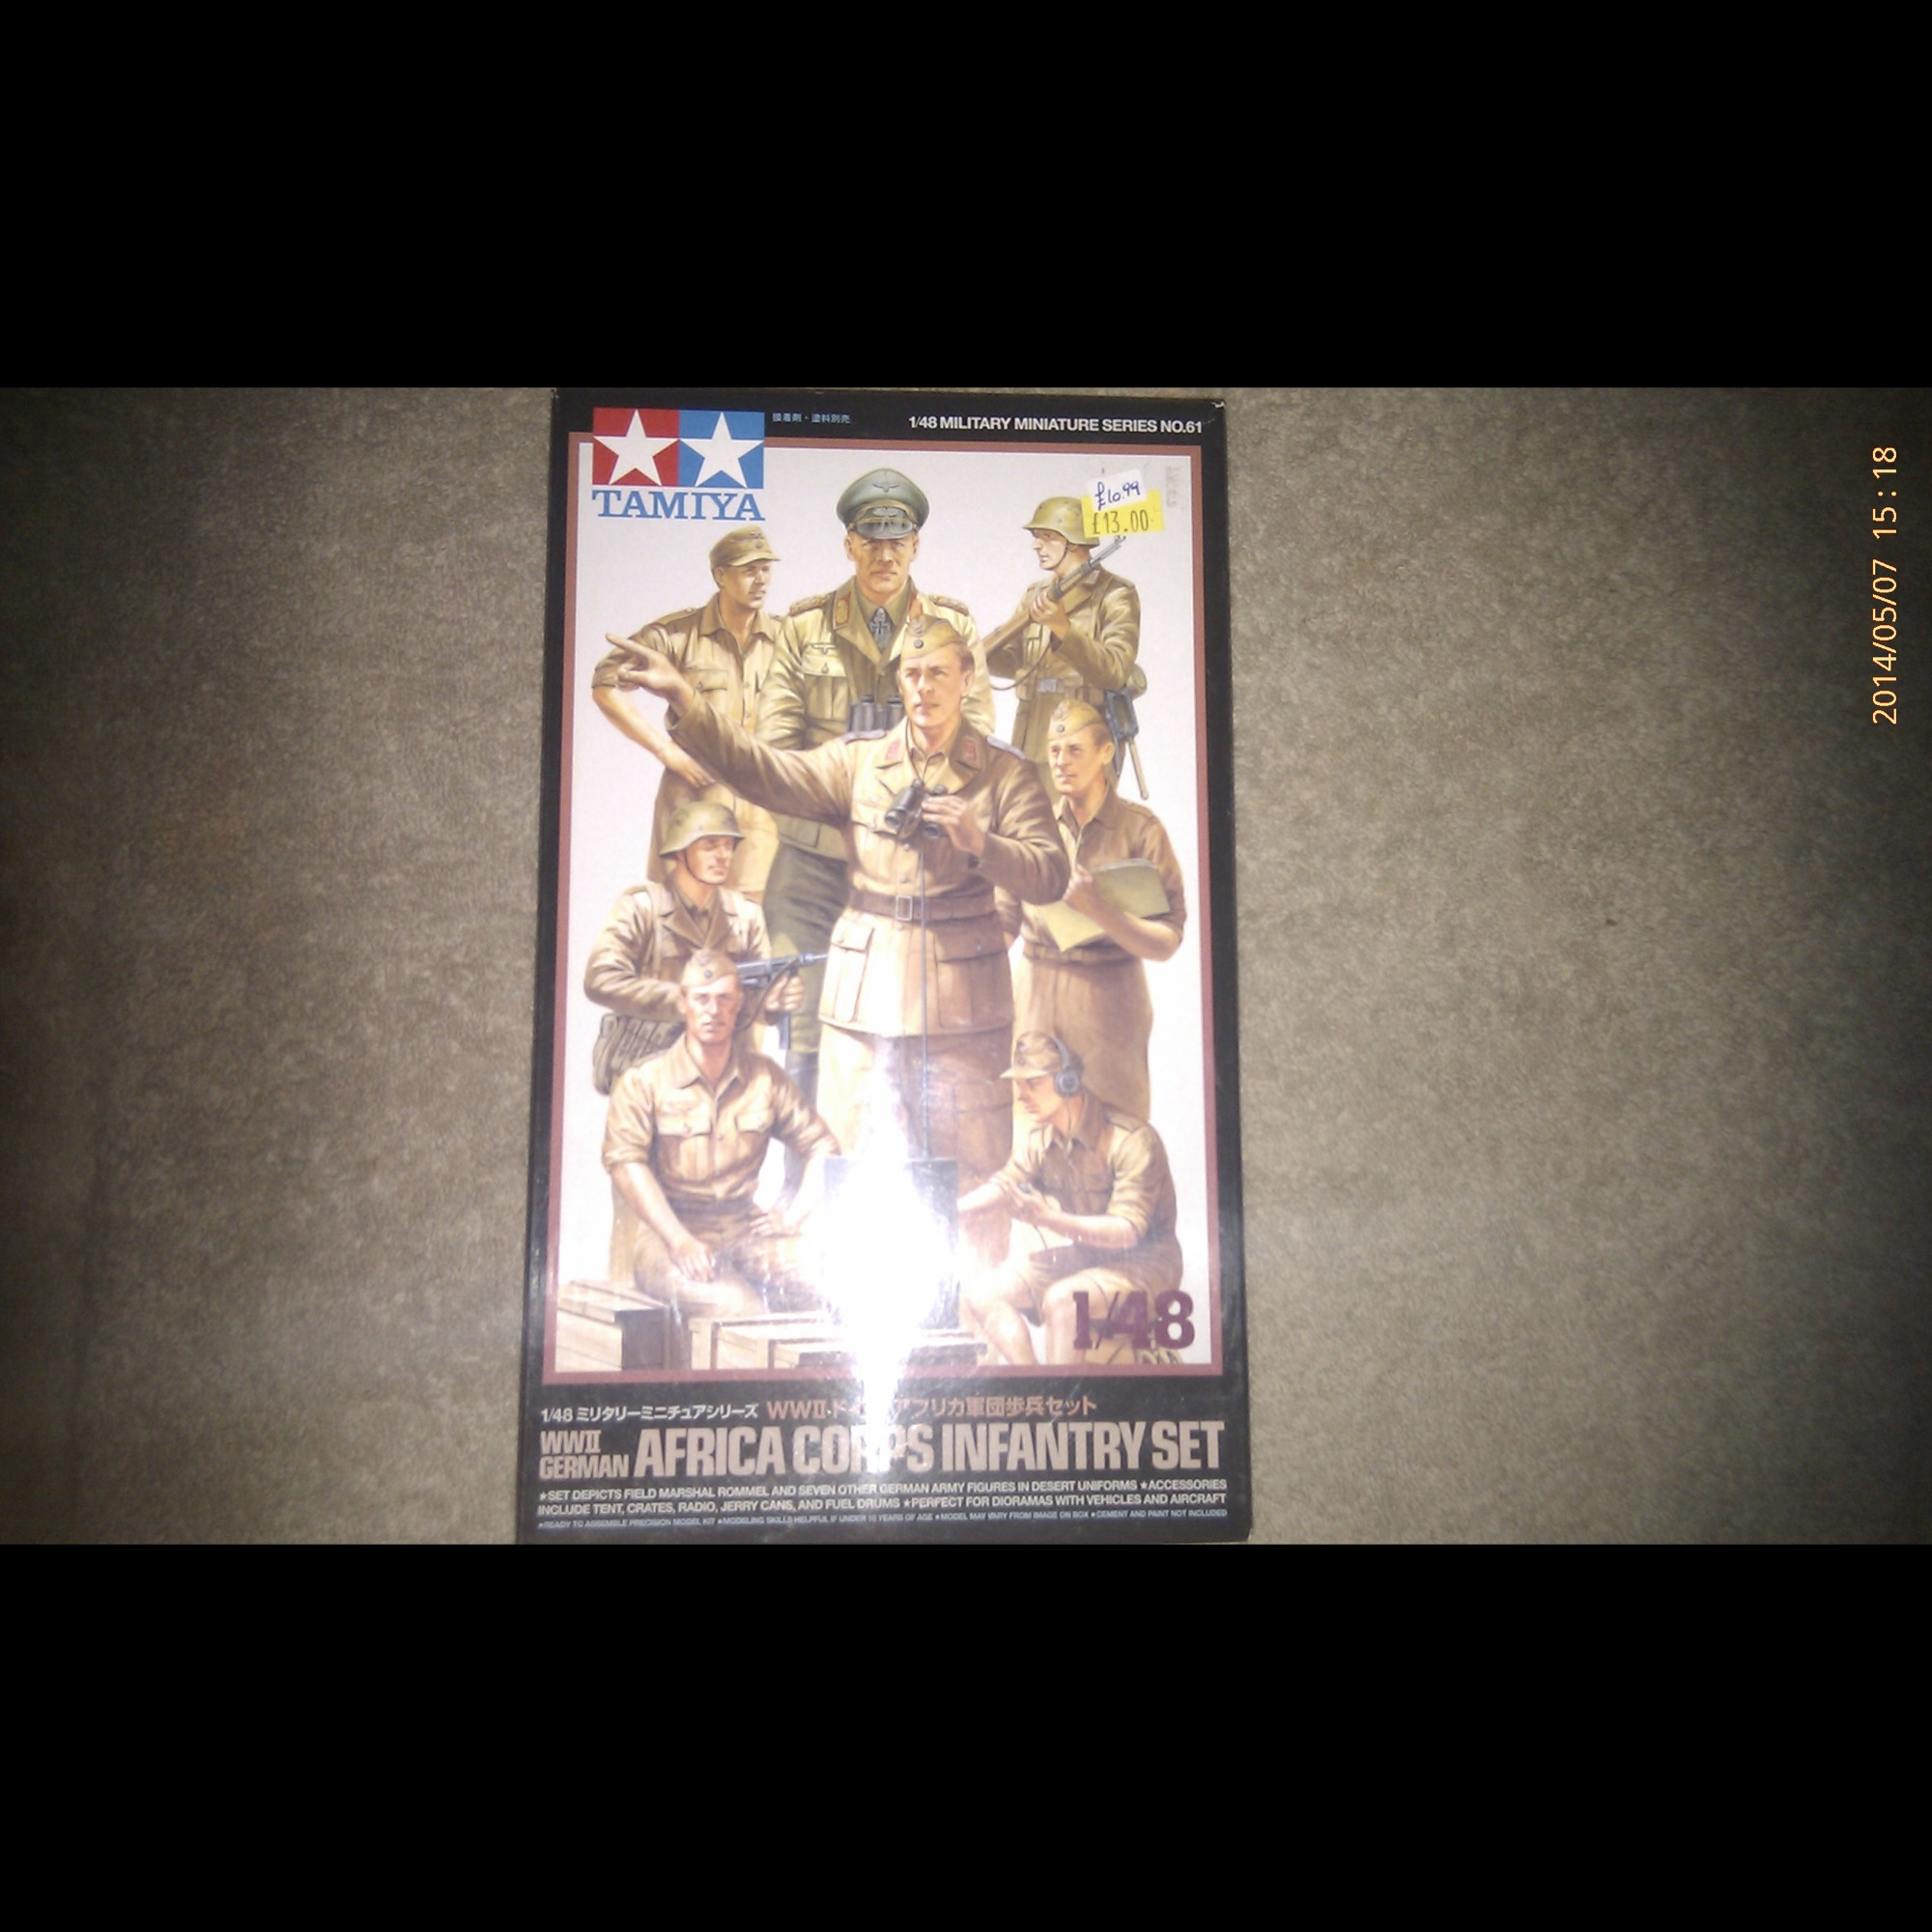 Africa Corps Infantry Set 1:48